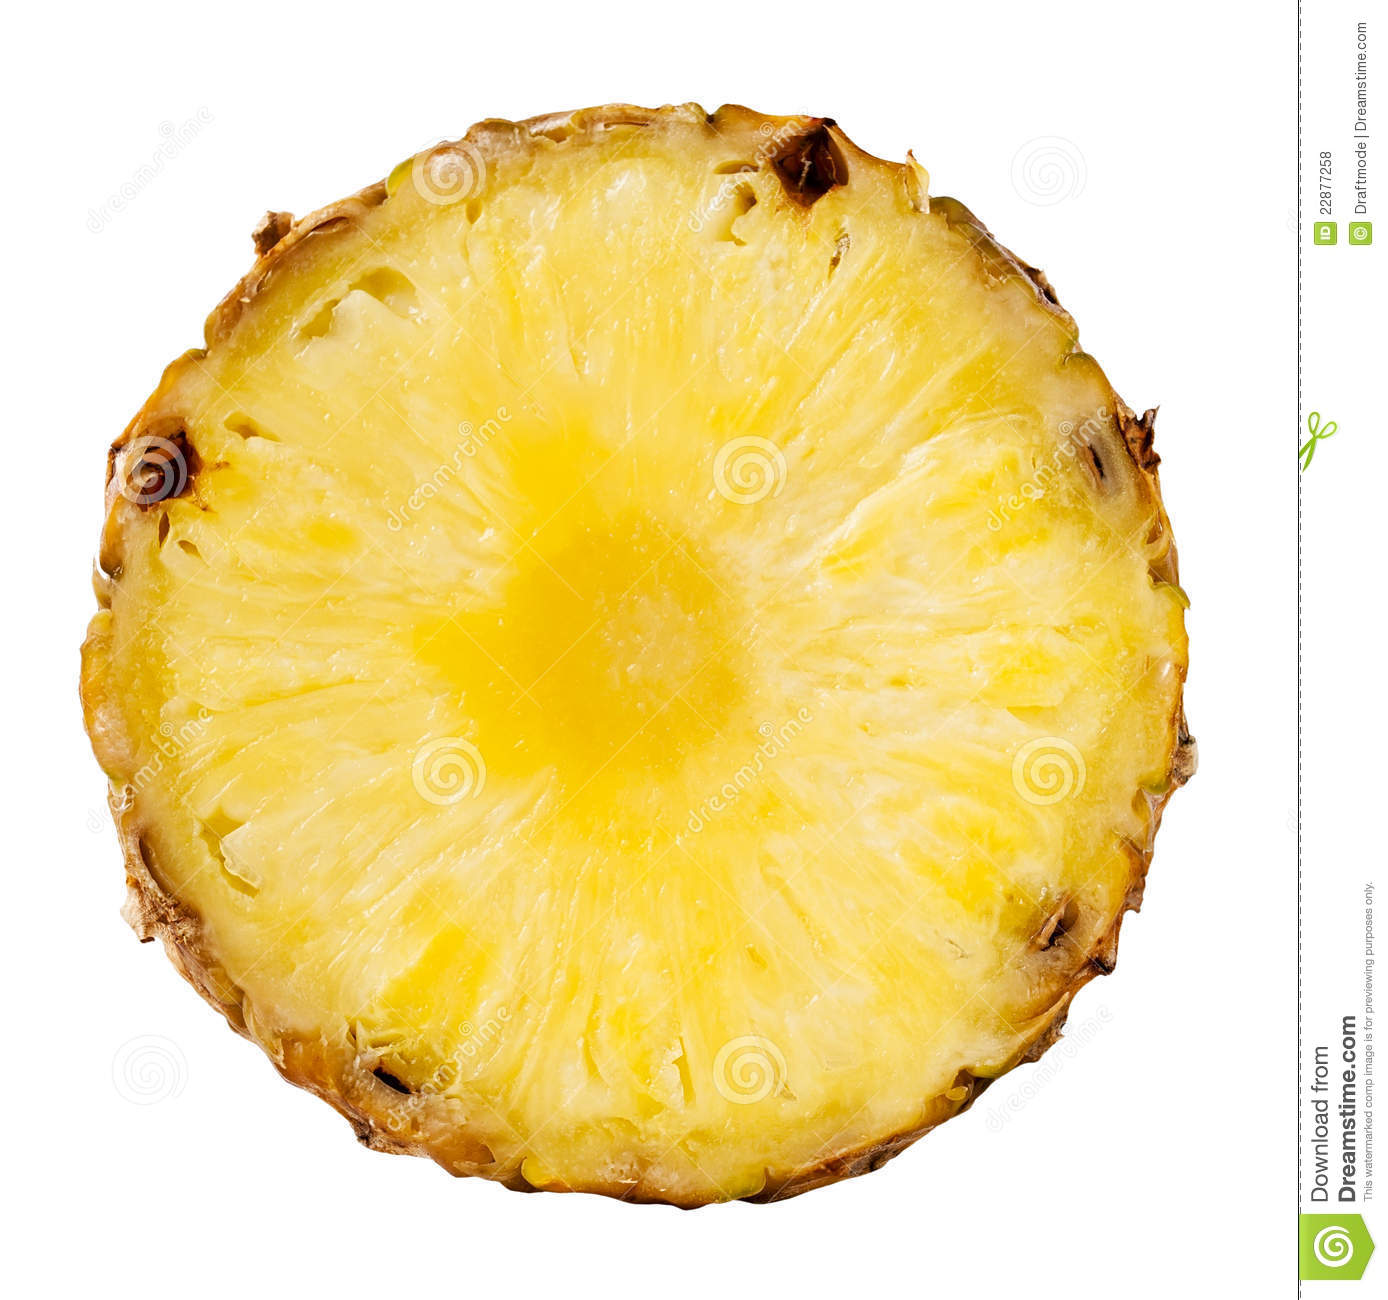 Pineapple Slice Royalty Free Stock Photos - Image: 22877258